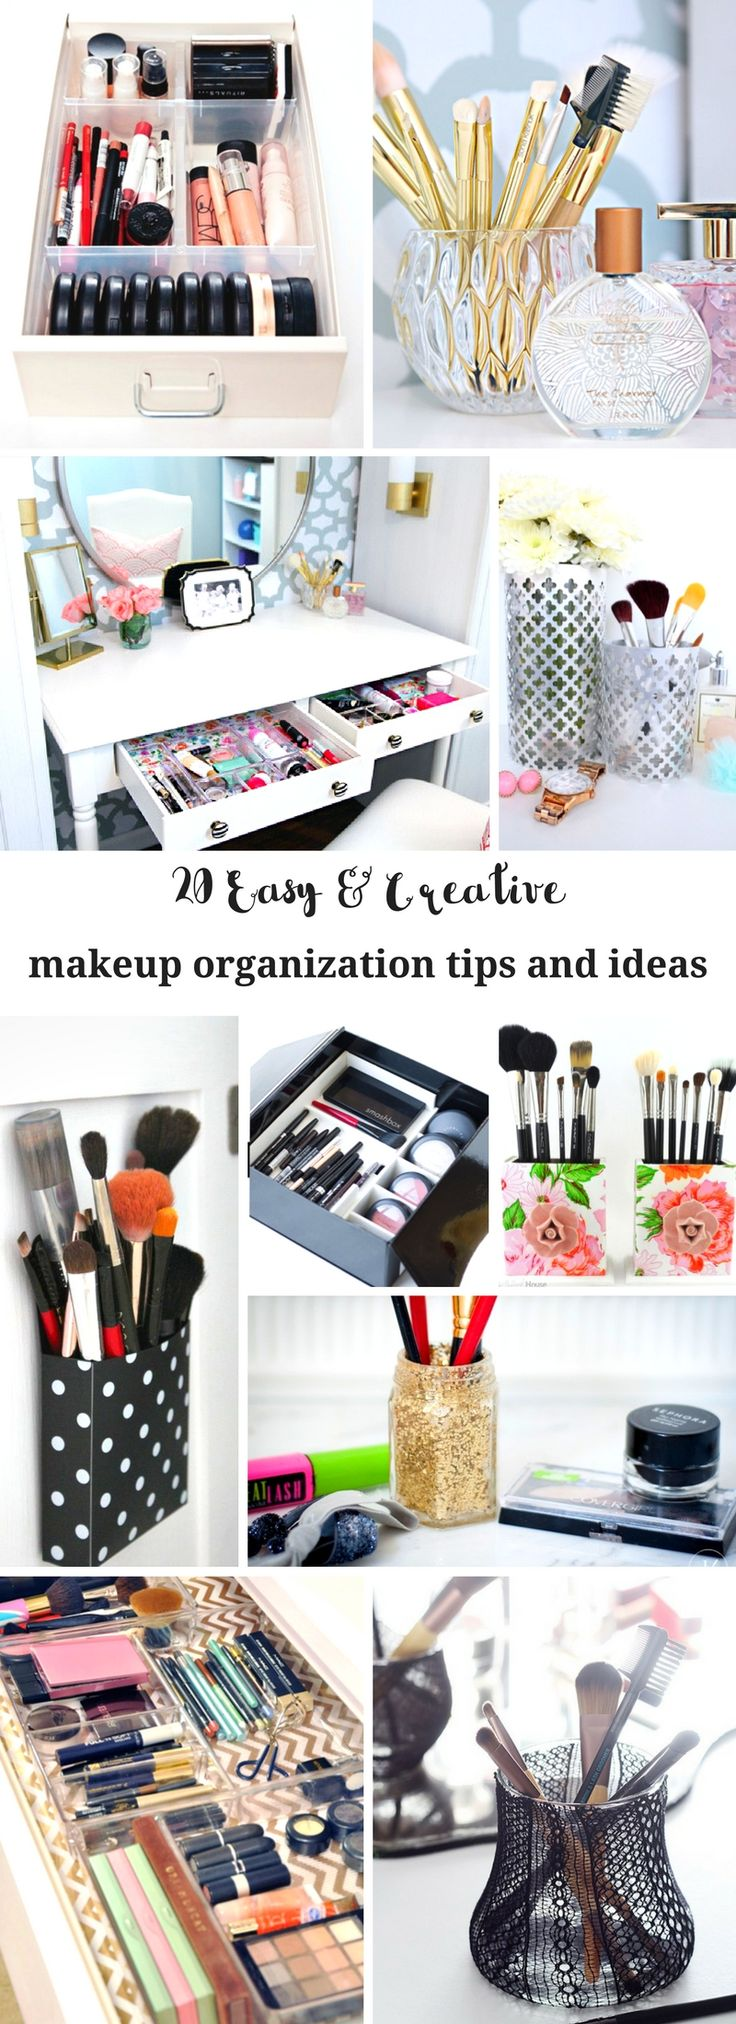 20 EASY AND CREATIVE MAKEUP ORGANIZATION TIPS + IDEAS